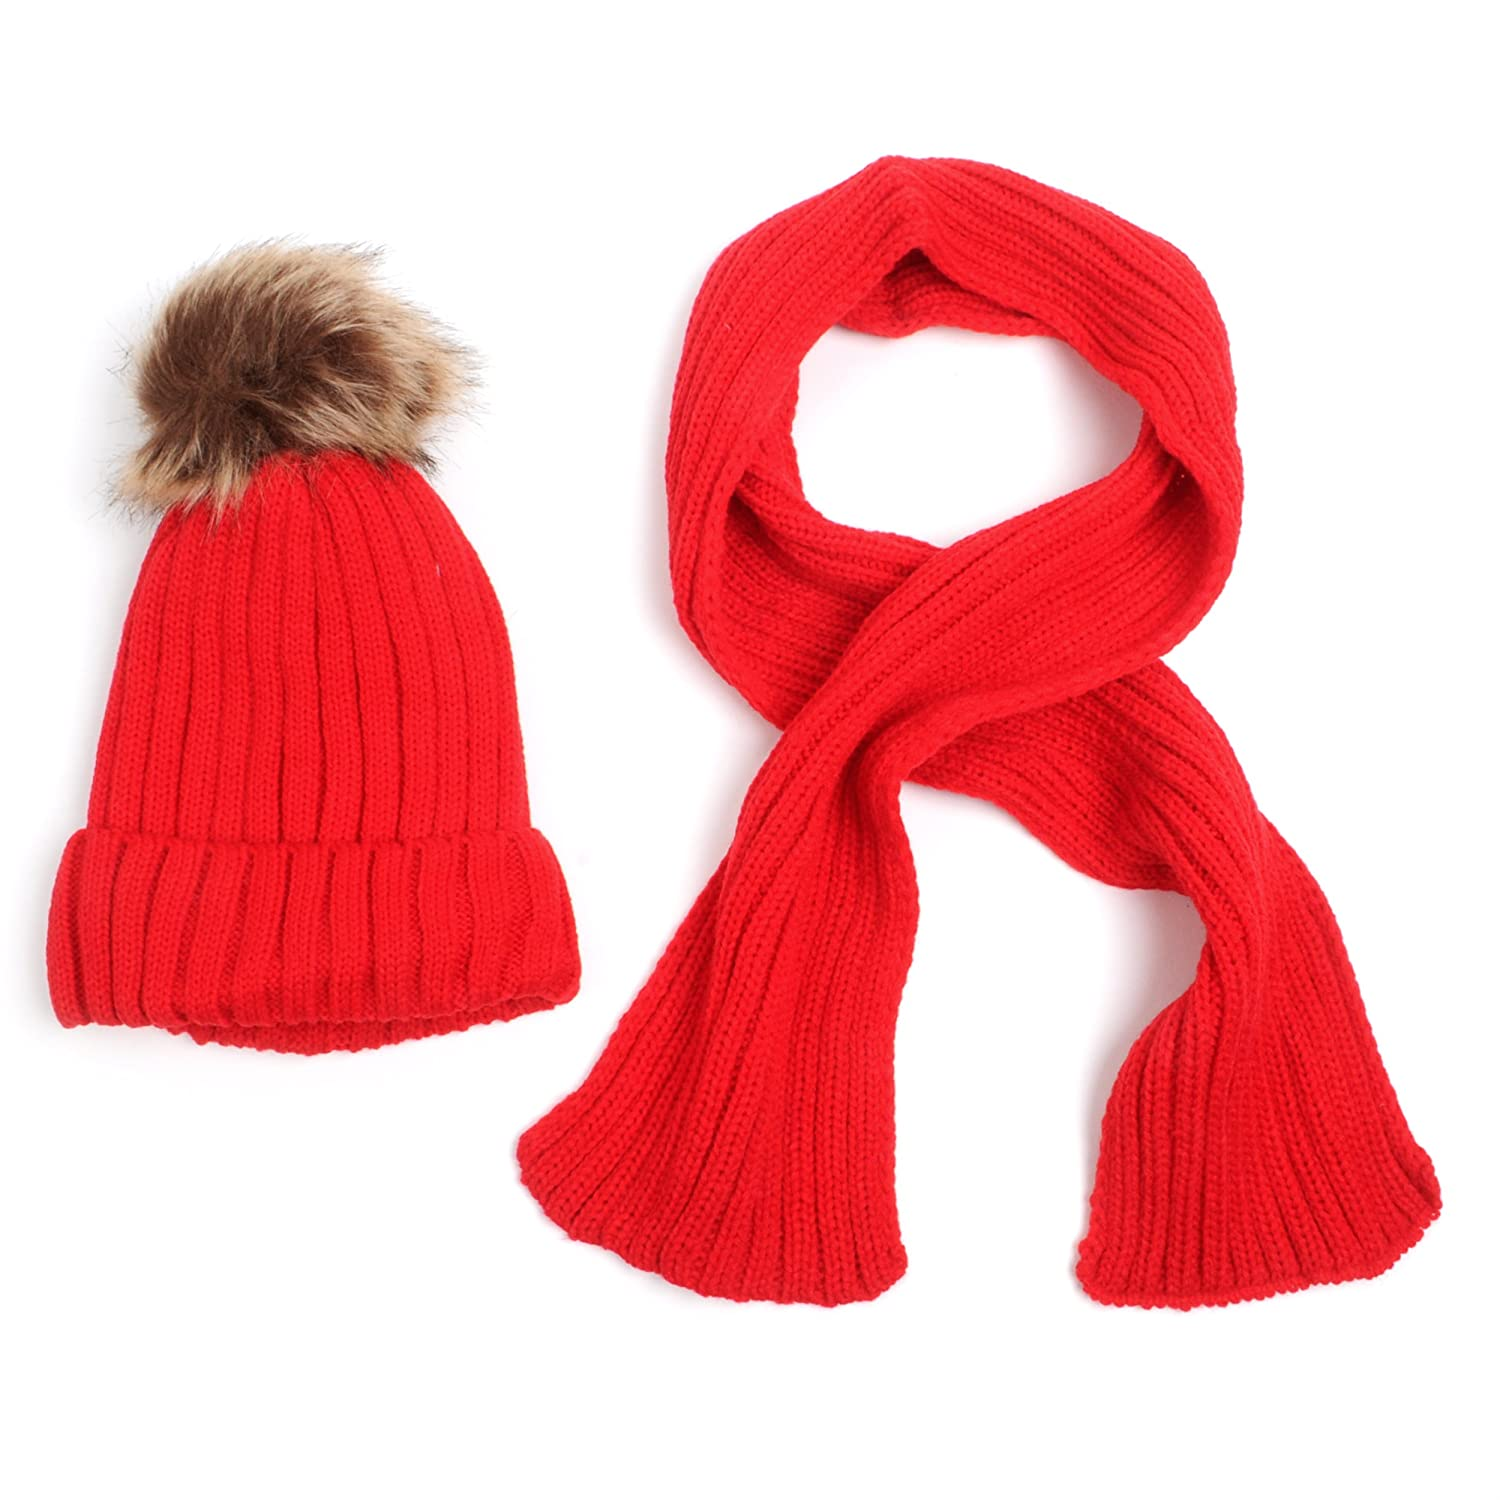 Kid's Classic Knitted Winter Hat and Scarf Set